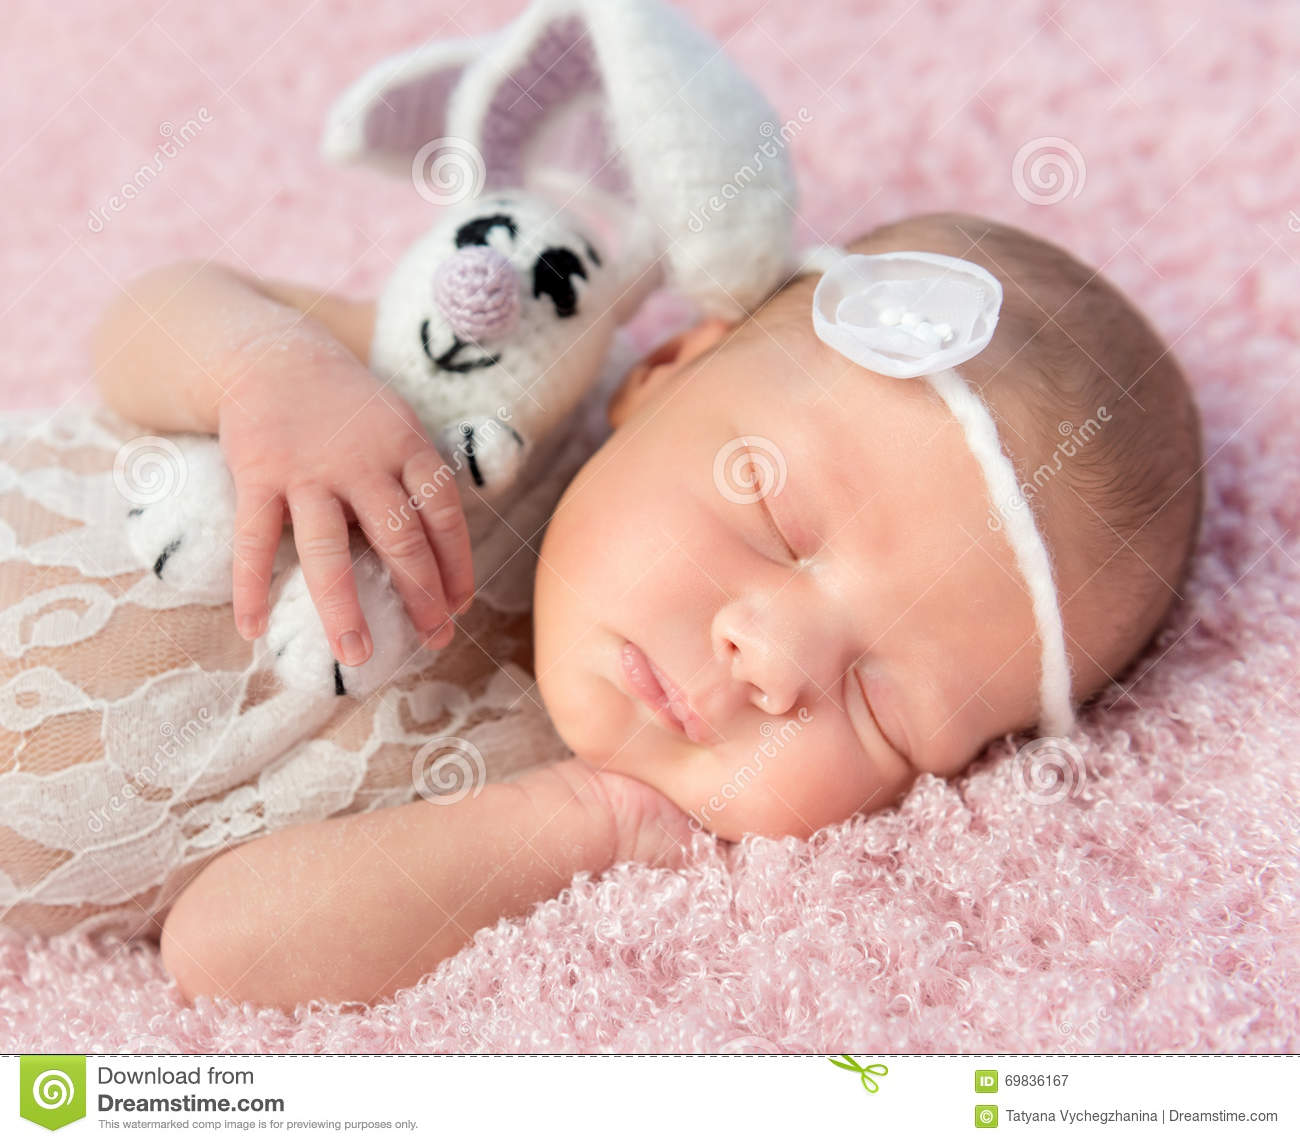 Cute Smiling Newborn Baby Sleeps On Blanket Stock Image Image Of Adorable Cute 69836167